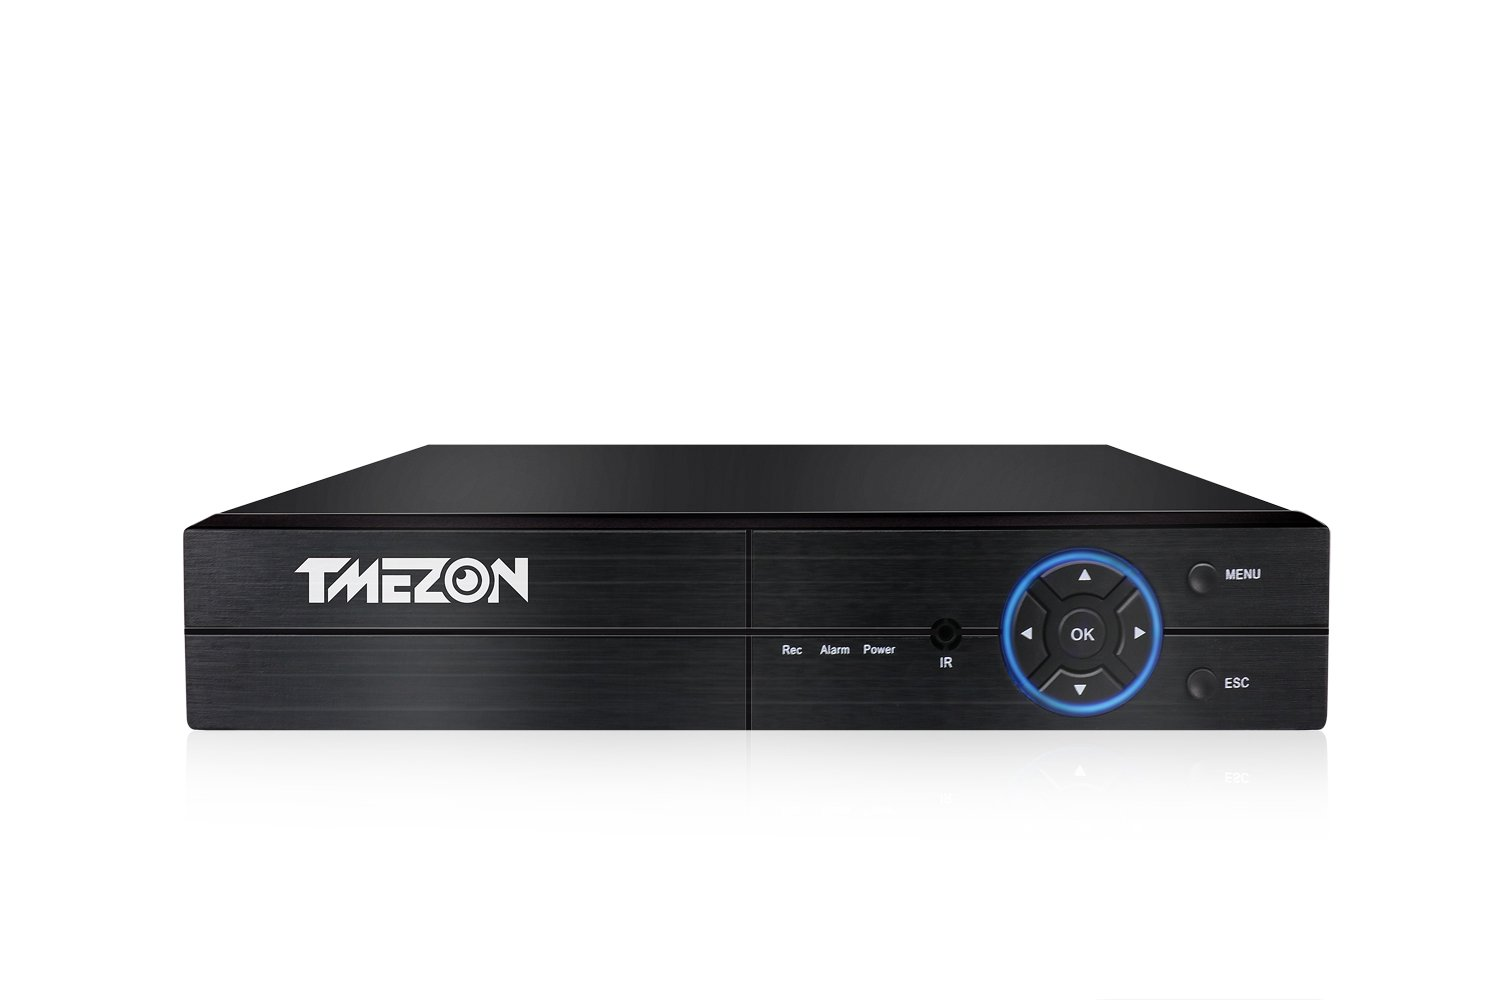 TMEZON 1080P Hybrid 5-in-1 AHD DVR (1080P NVR+1080P AHD+960H Analog +TVI+CVI) CCTV 4 channel Standalone dvr Quick QR Code Scan w/ Easy Remote View Home Security Surveillance Camera System by TMEZON (Image #1)